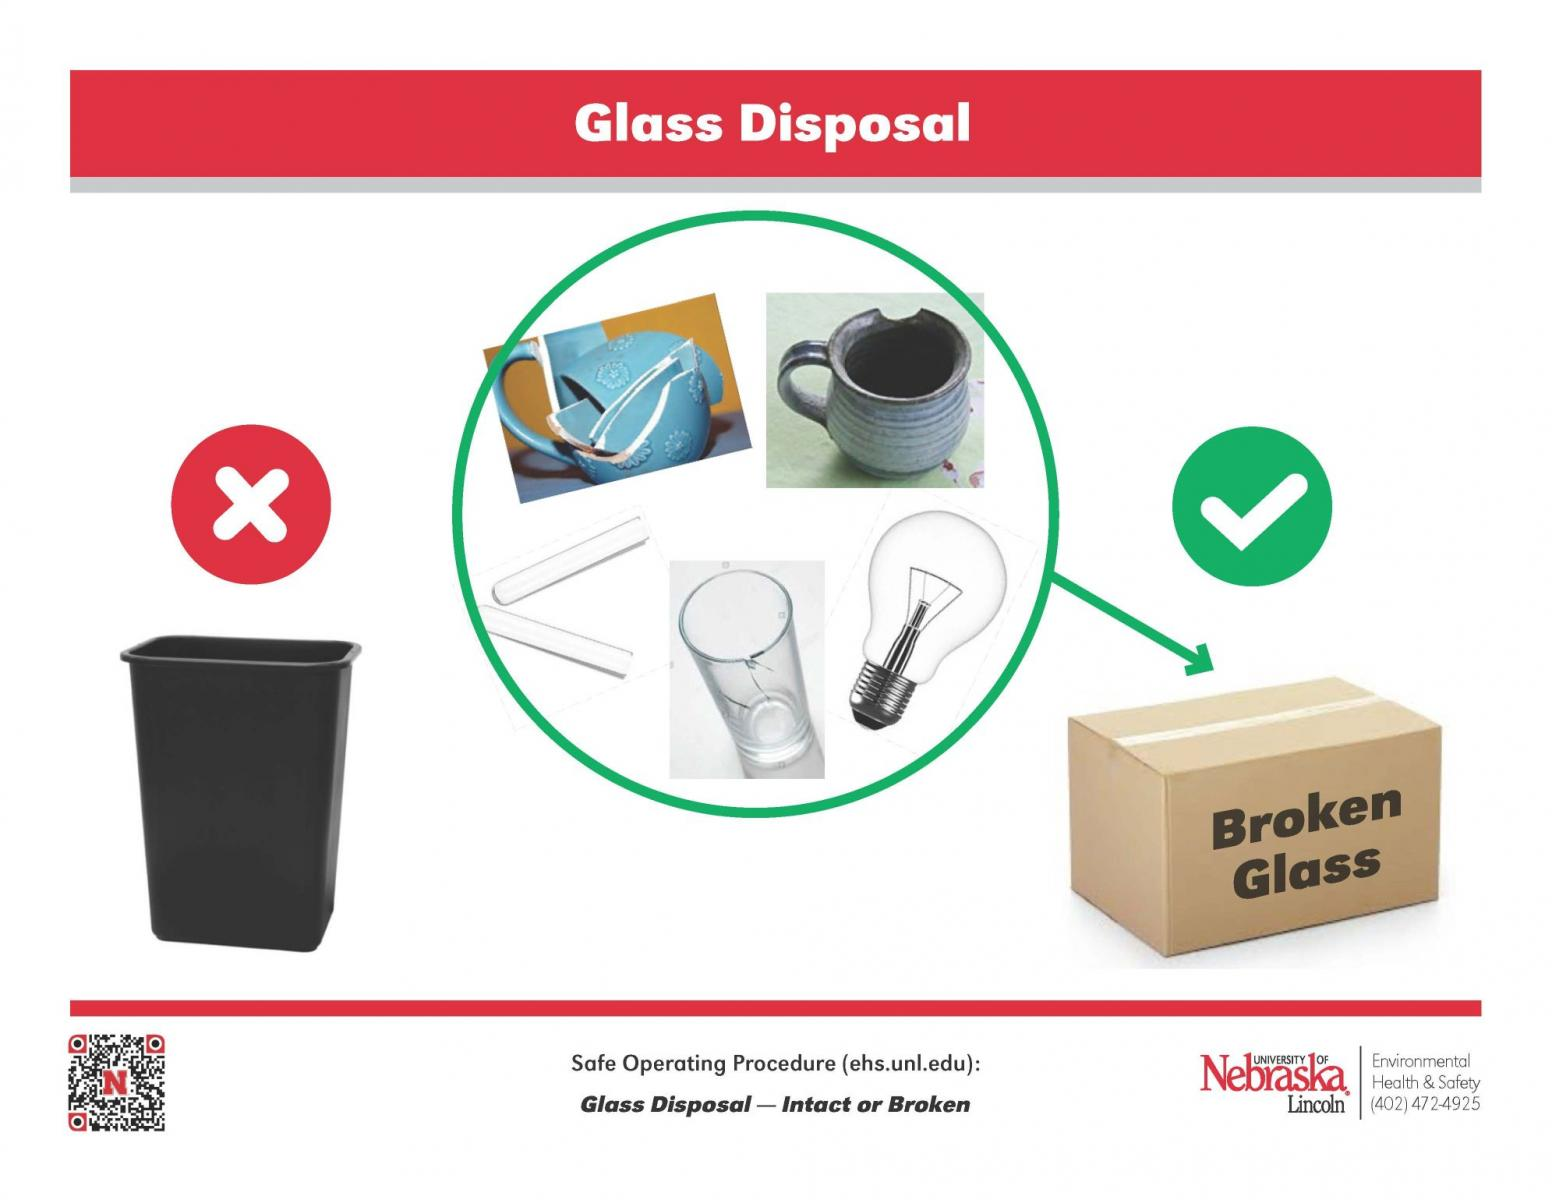 poster describing how to dispose glass properly